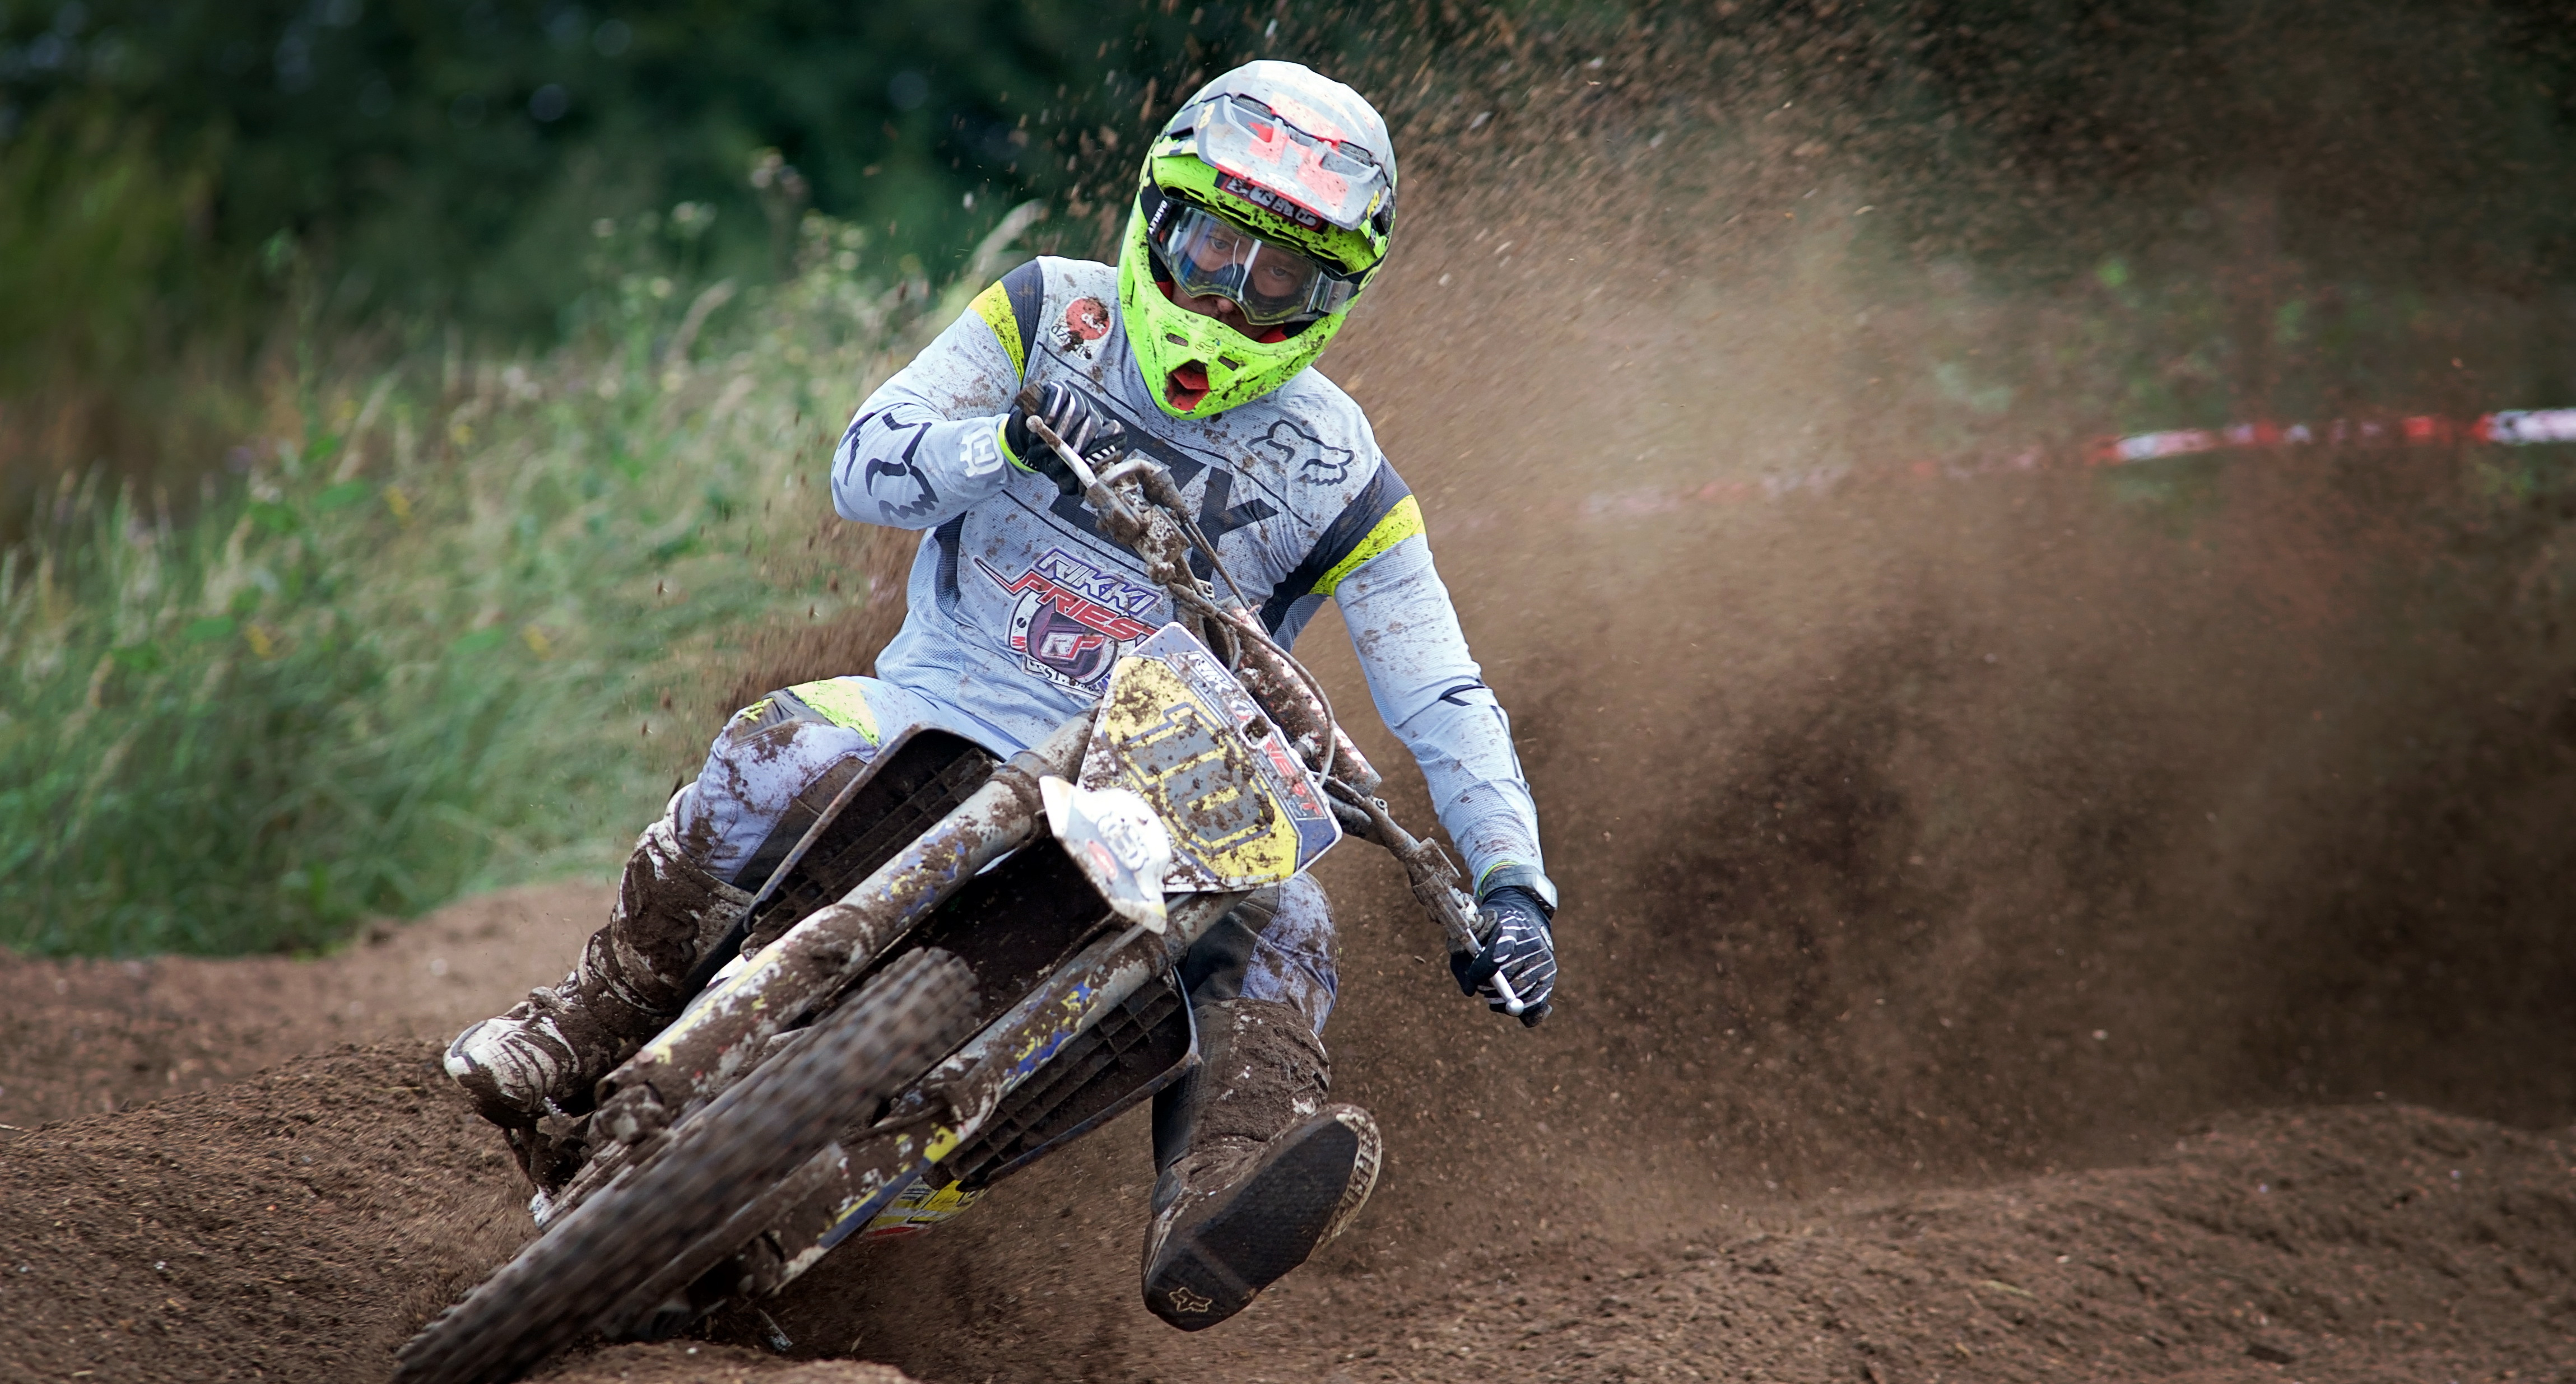 Motocross 4k Ultra HD Wallpaper And Background Image